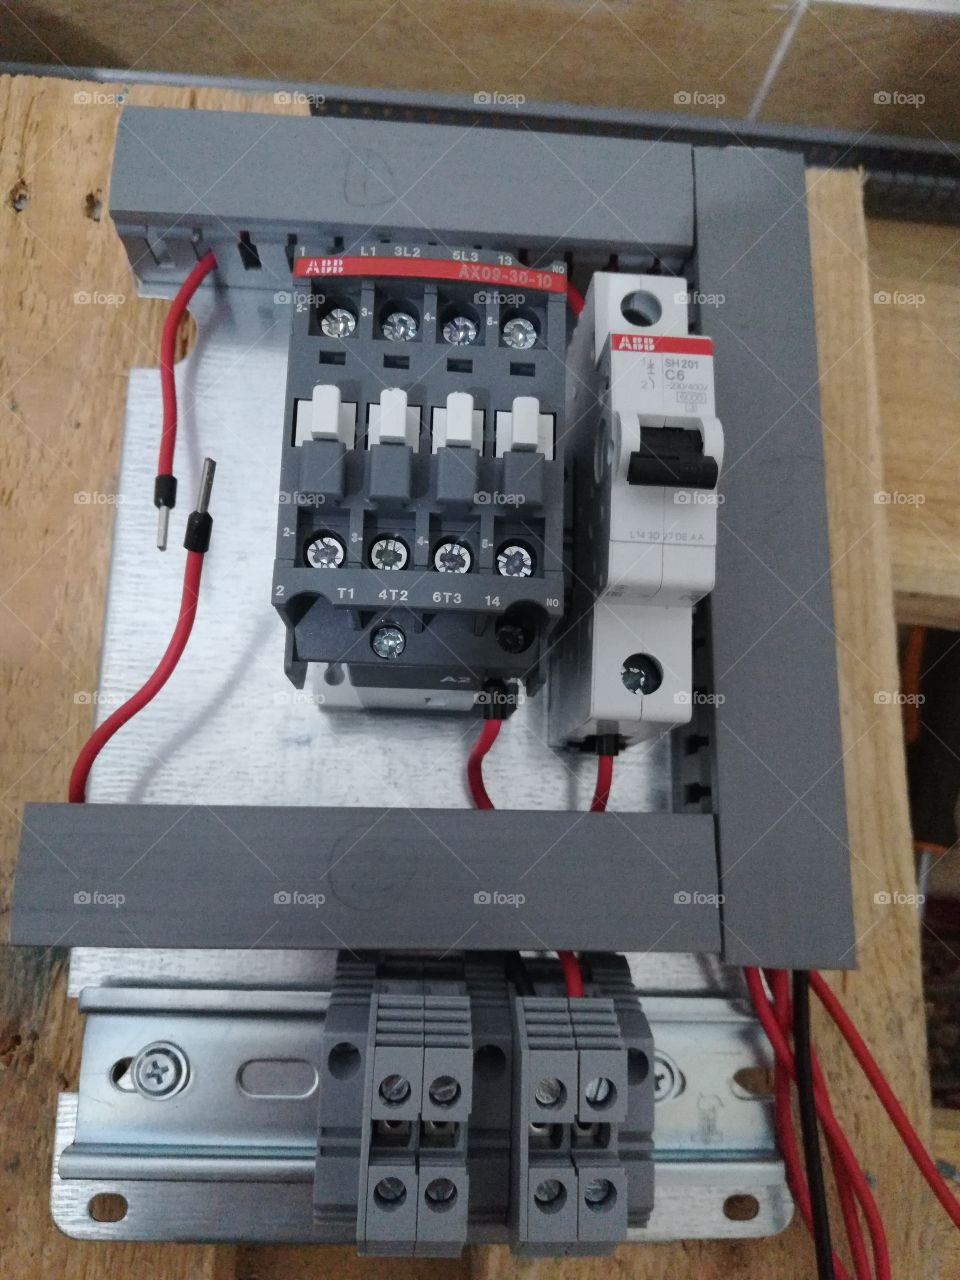 Electric panel, control system, ABB